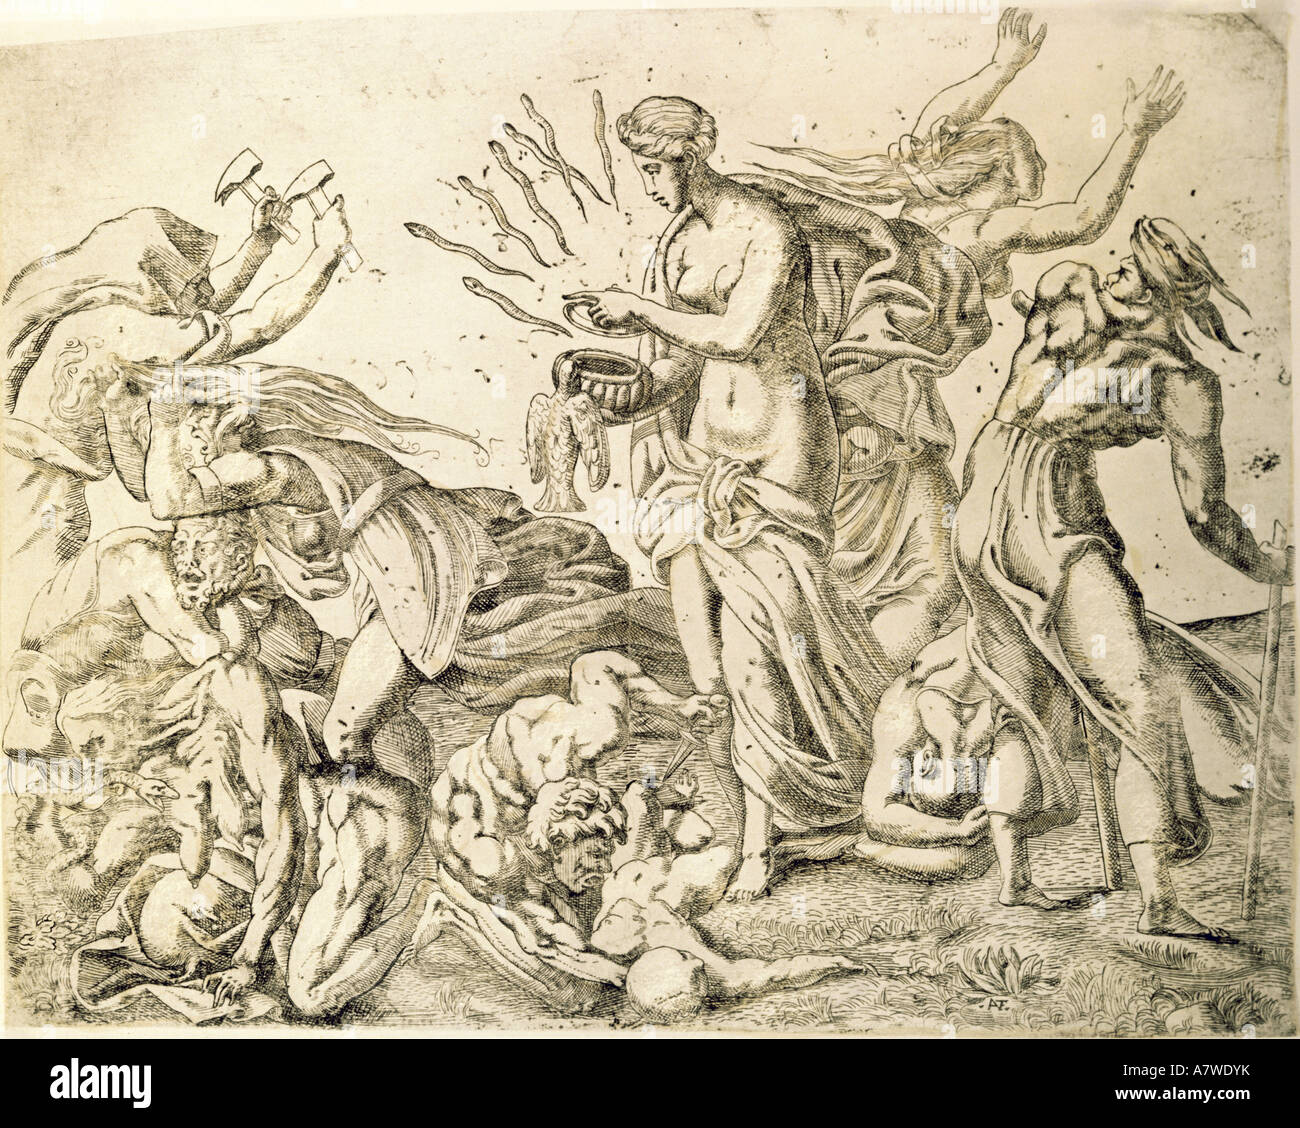 religion ancient world greek mythology pandora releasing the stock photo religion ancient world greek mythology pandora releasing the misfortunes of mankind etching by antonion fantuzzi circa 154